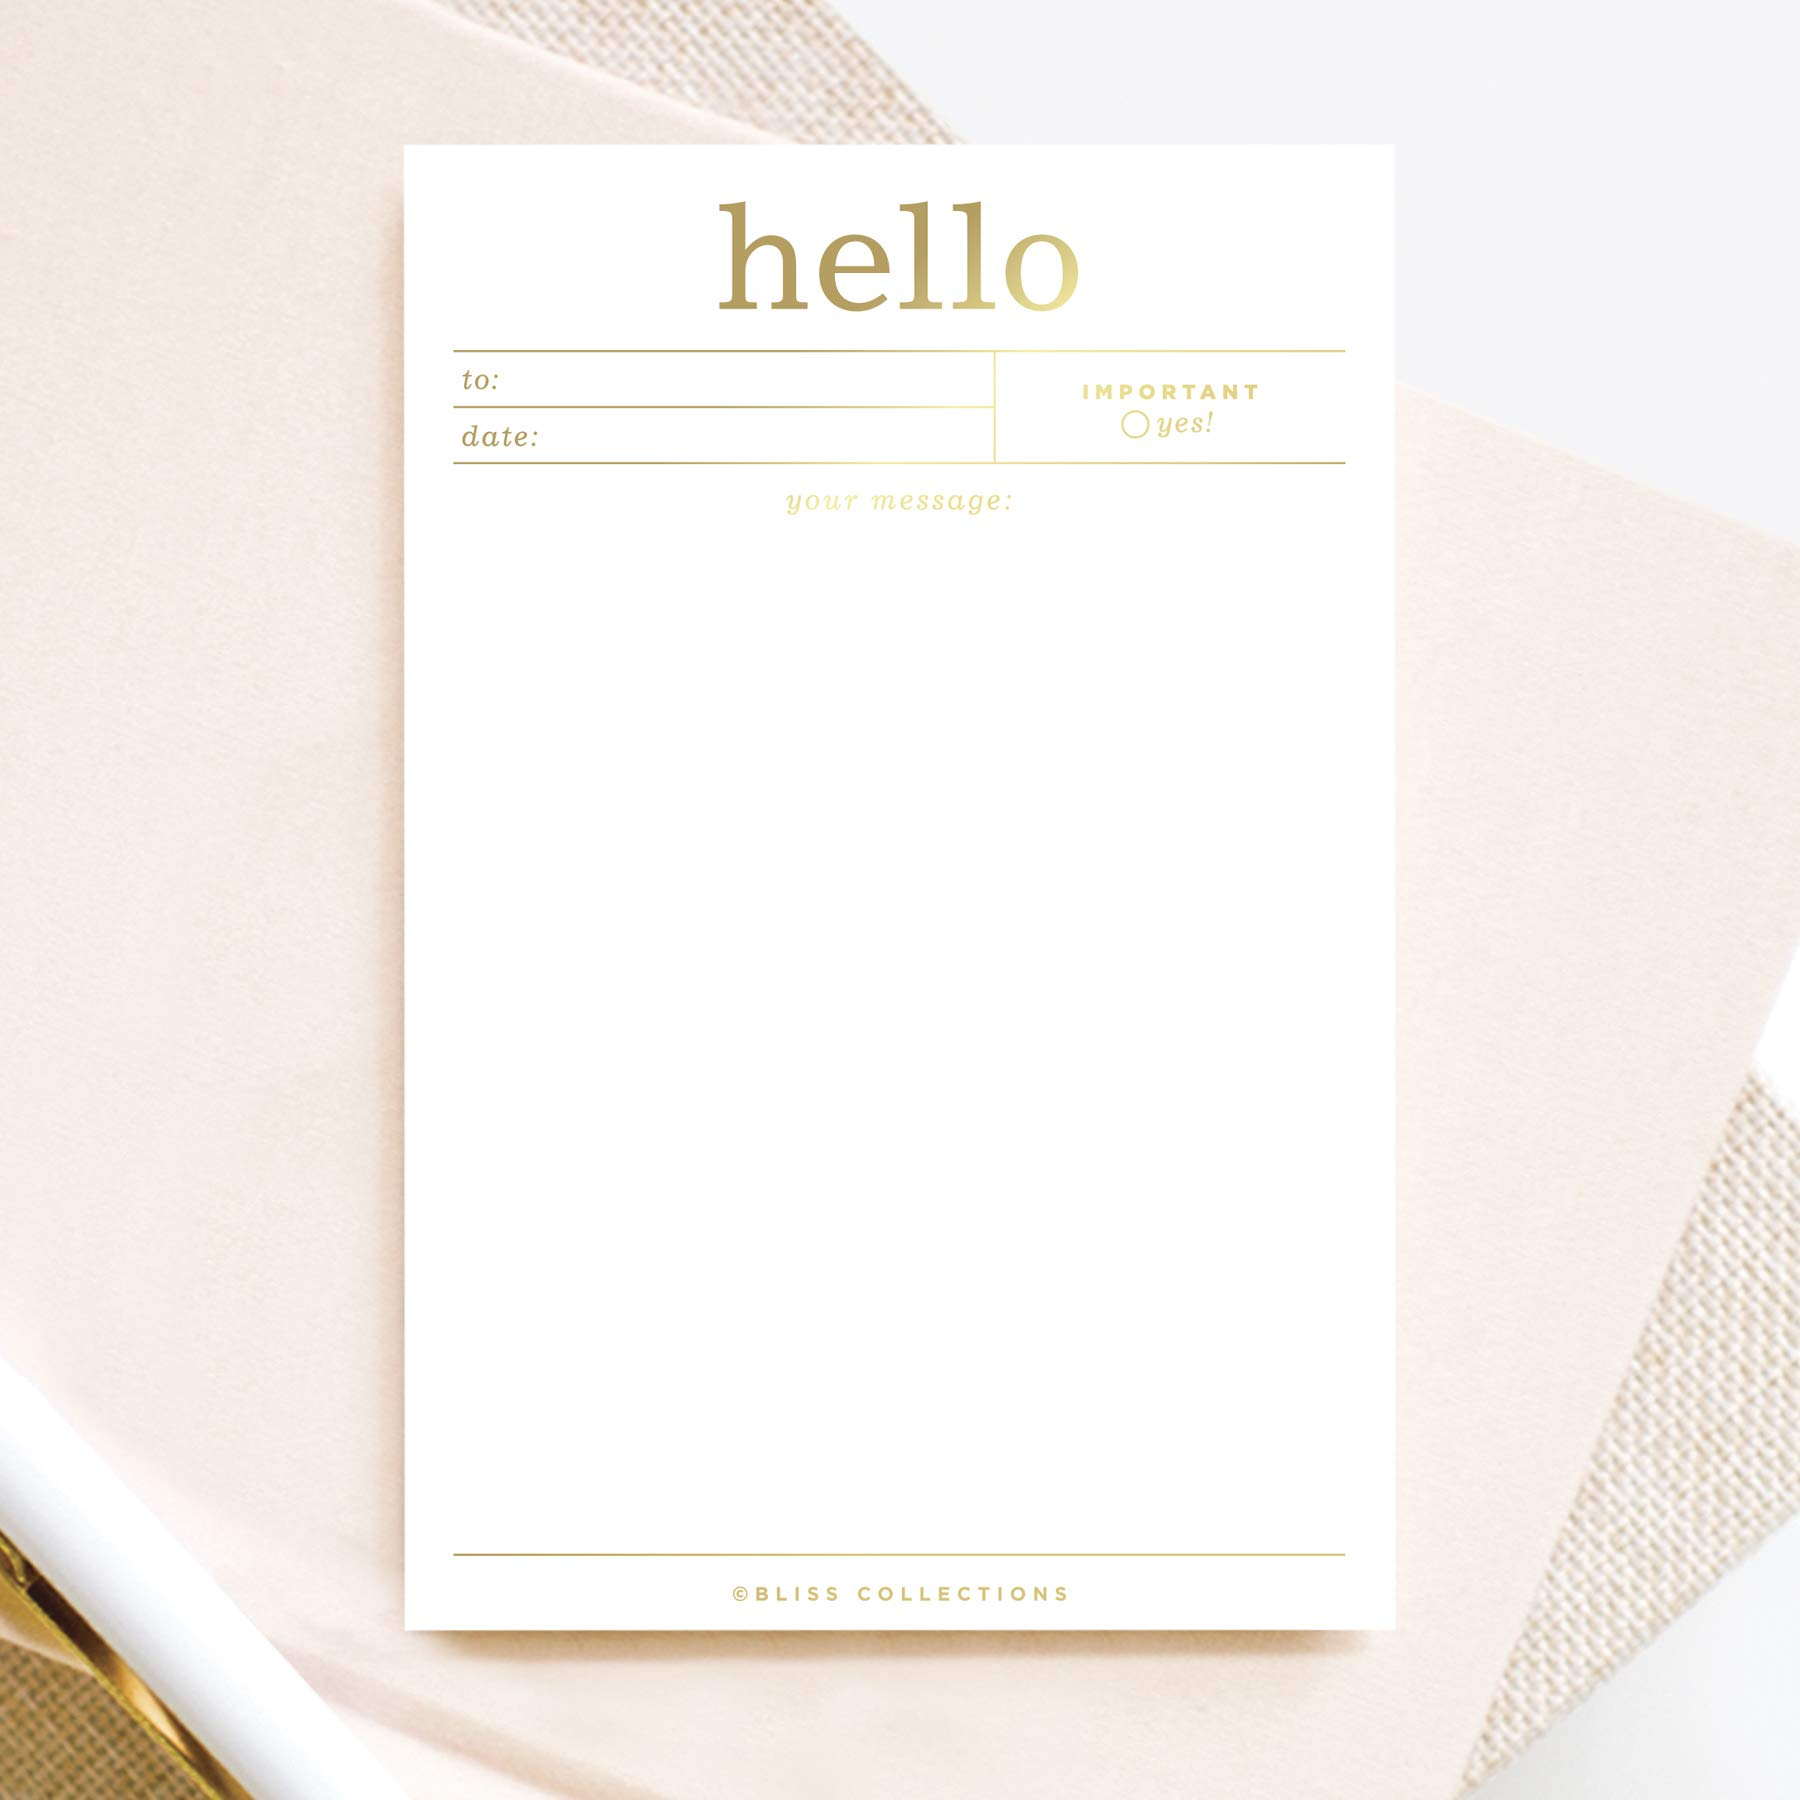 Bliss Collections Desk Notes Notepad, Hello 4x6 Office Notes, Real Gold foil, Tear Off pad, memo Telegram Design for Reminders, Thank You, just Because and More! 50 Sheets, Made in The USA